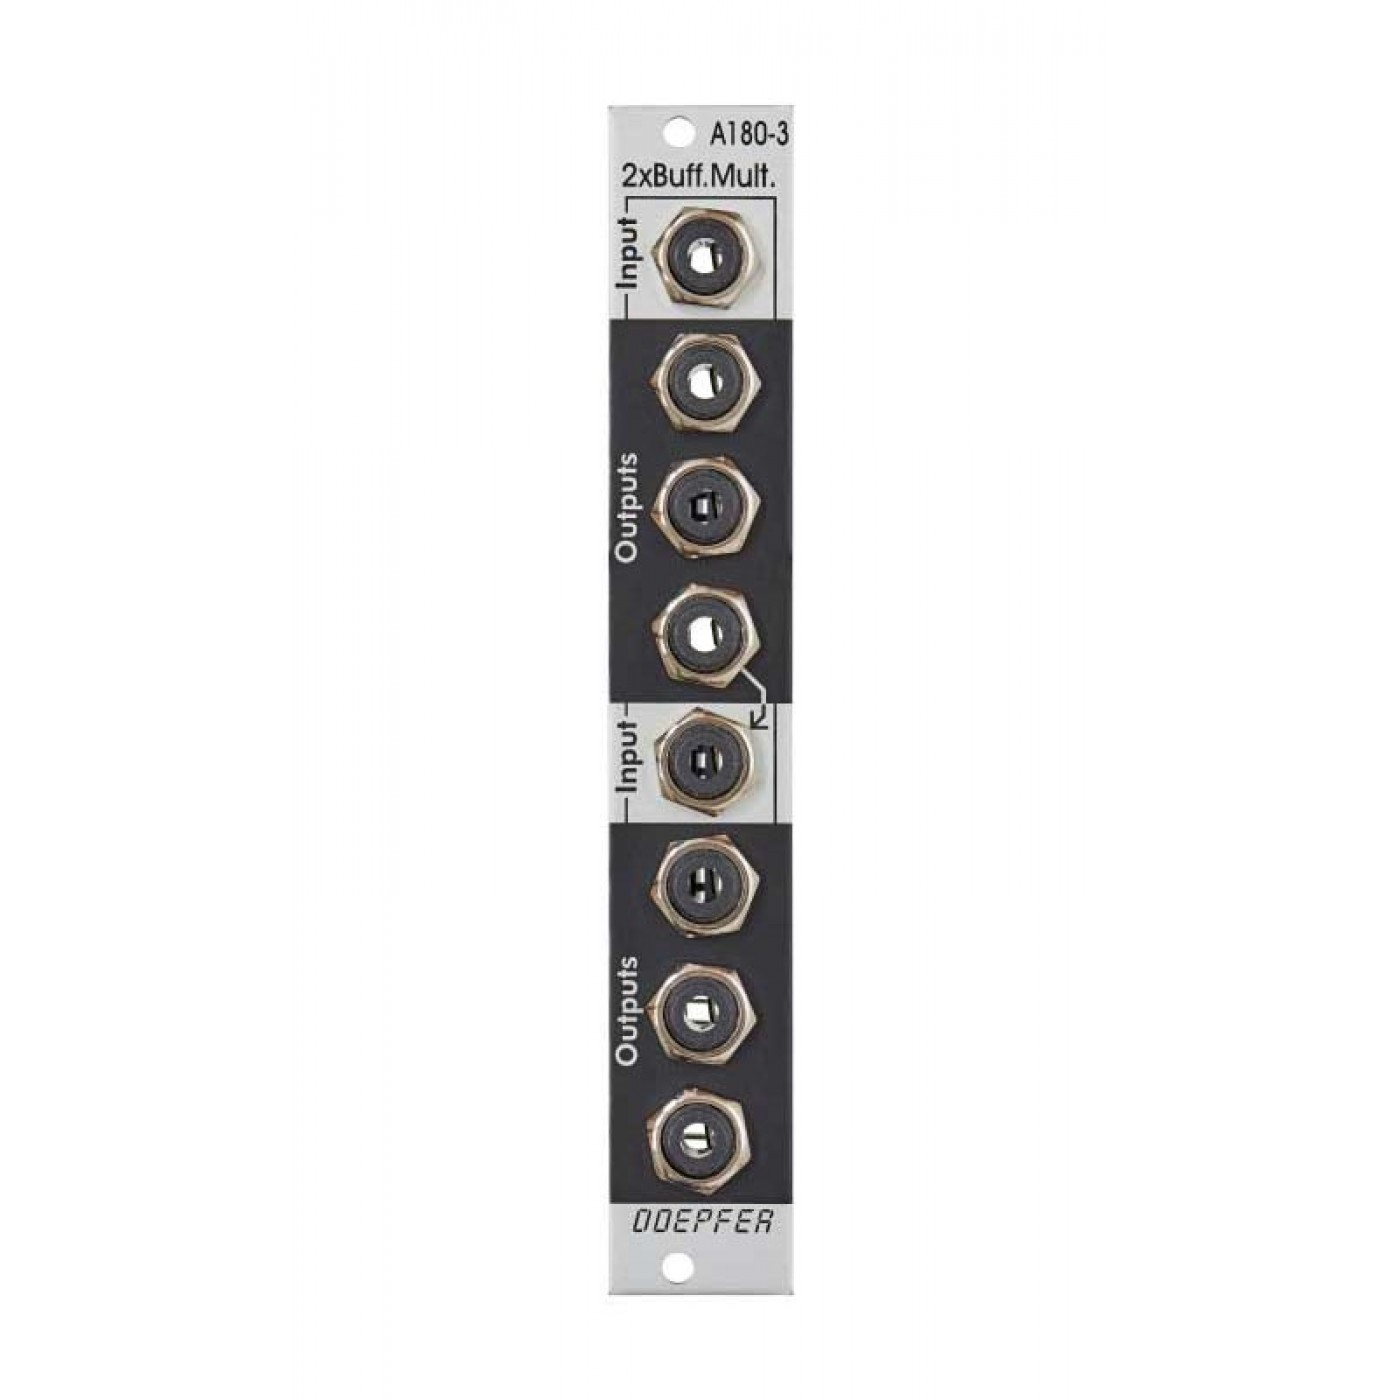 Doepfer A-180-3 Dual Buffered Multiple | Rage Audio